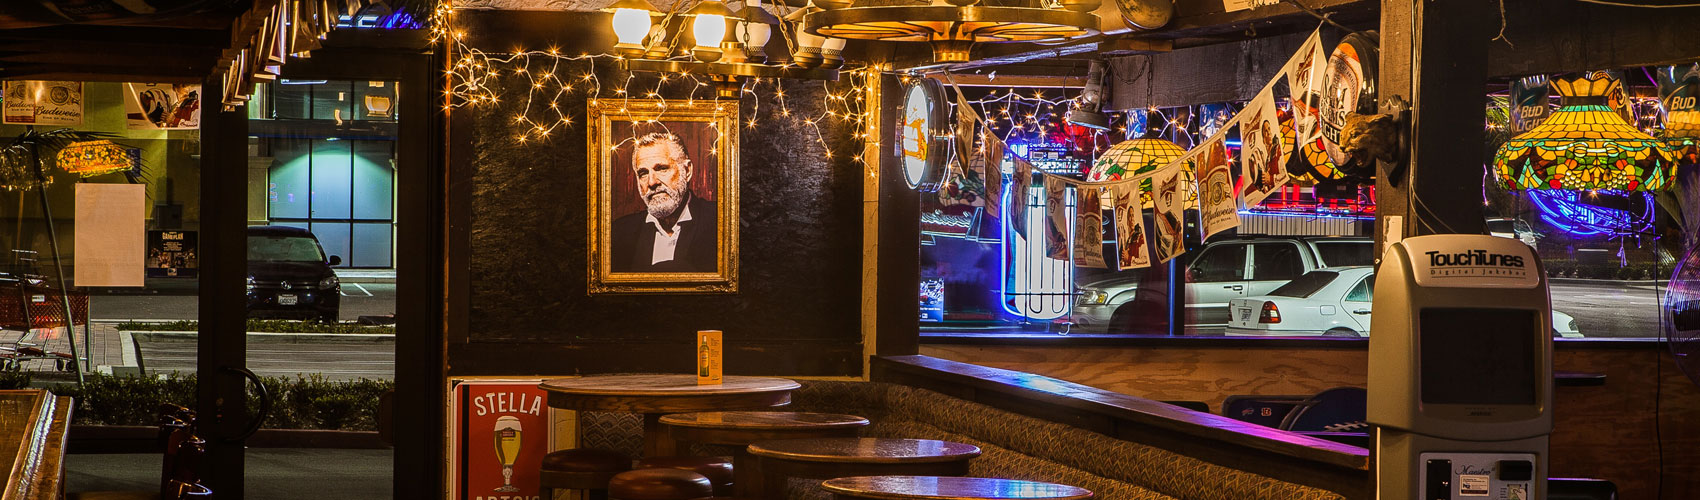 picture of a bar with the most interesting man in the world